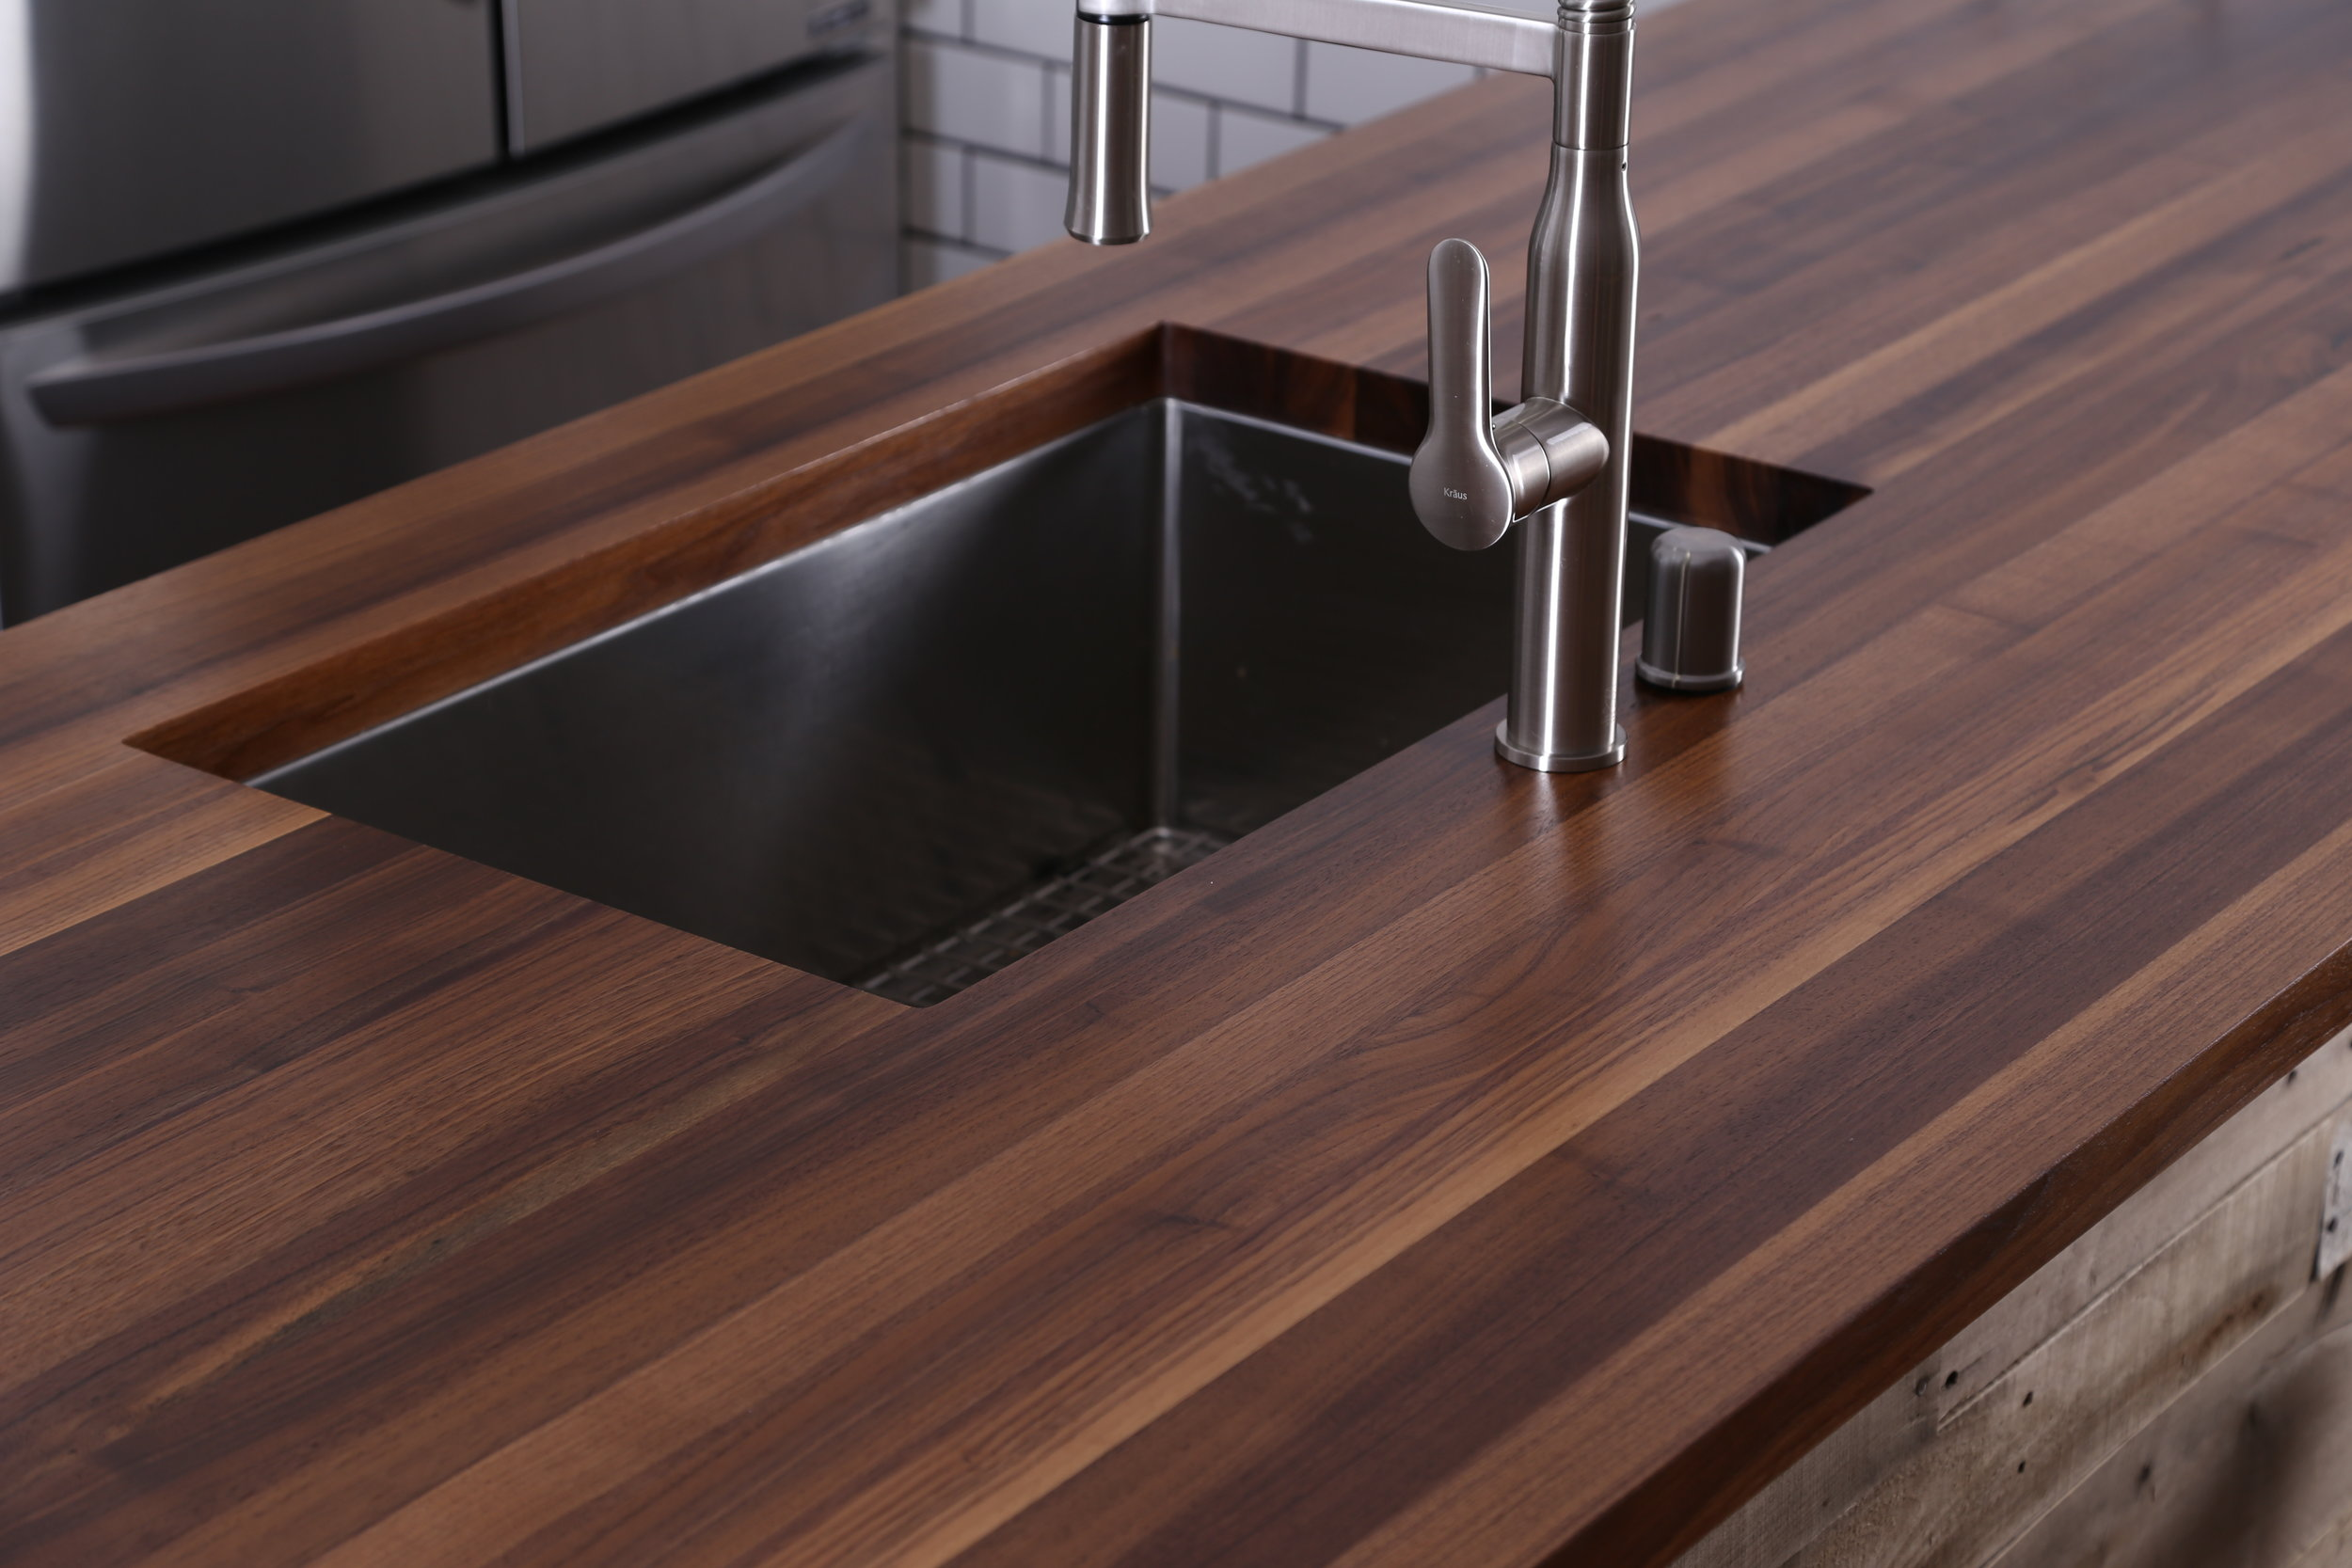 Walnut edge grain countertop